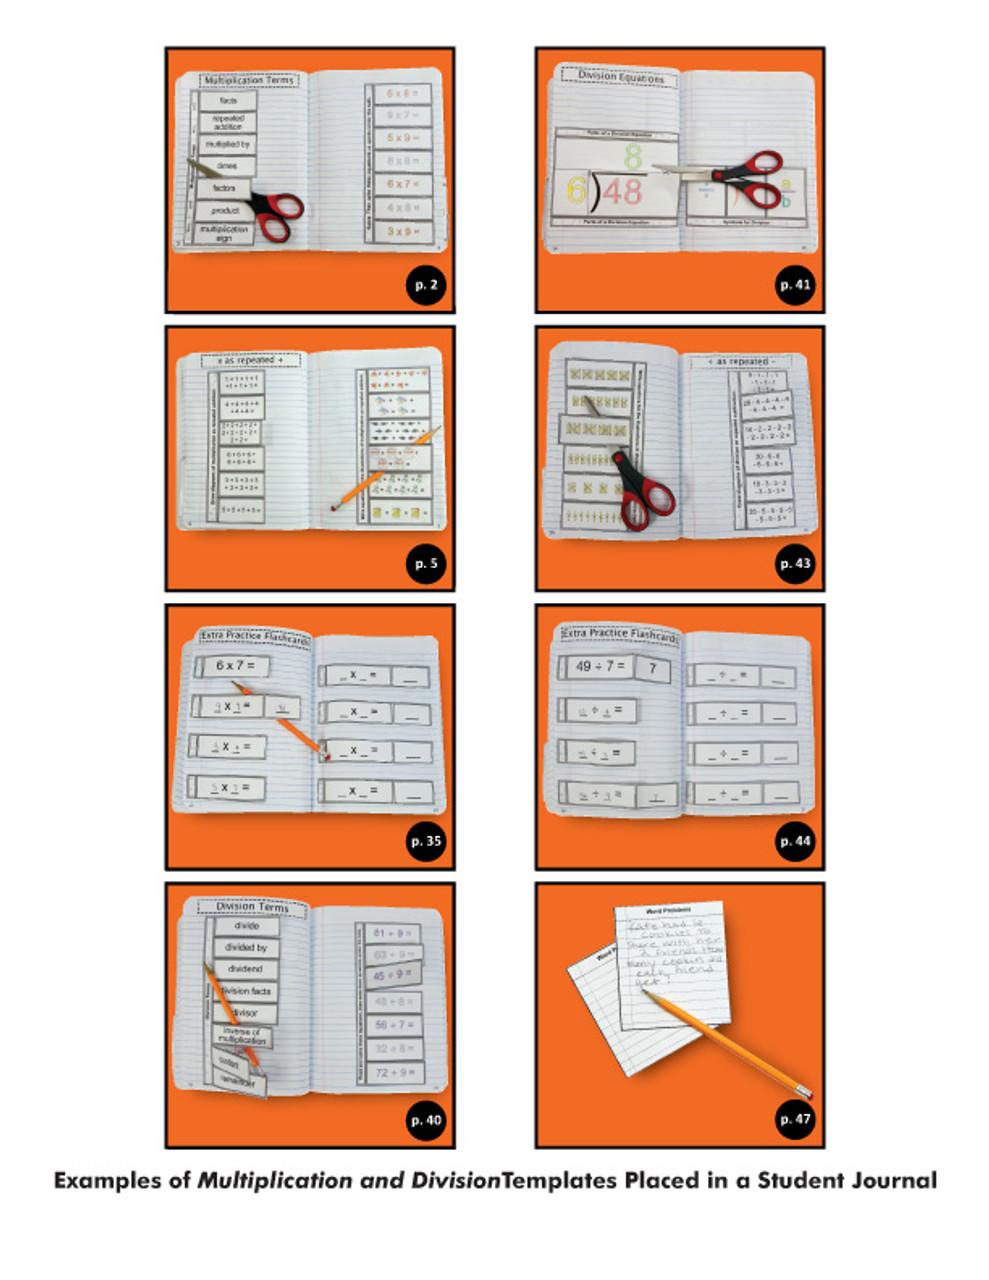 Nc mult-div val oct8 layout 1 (page 03)